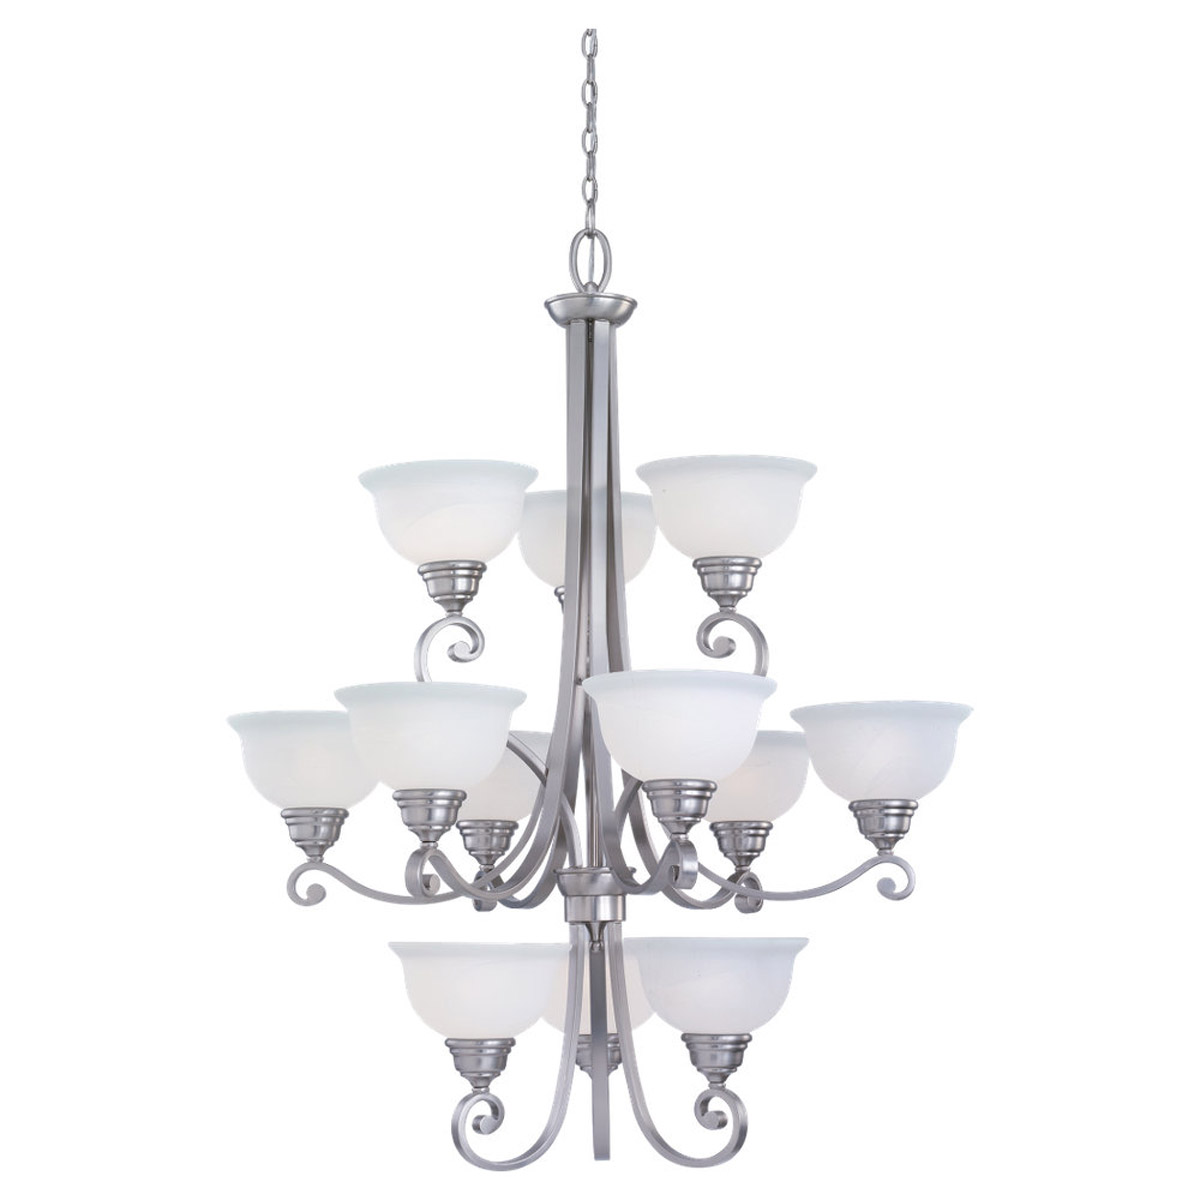 Sea Gull Lighting Serenity 12 Light Chandelier in Brushed Nickel 31193-962